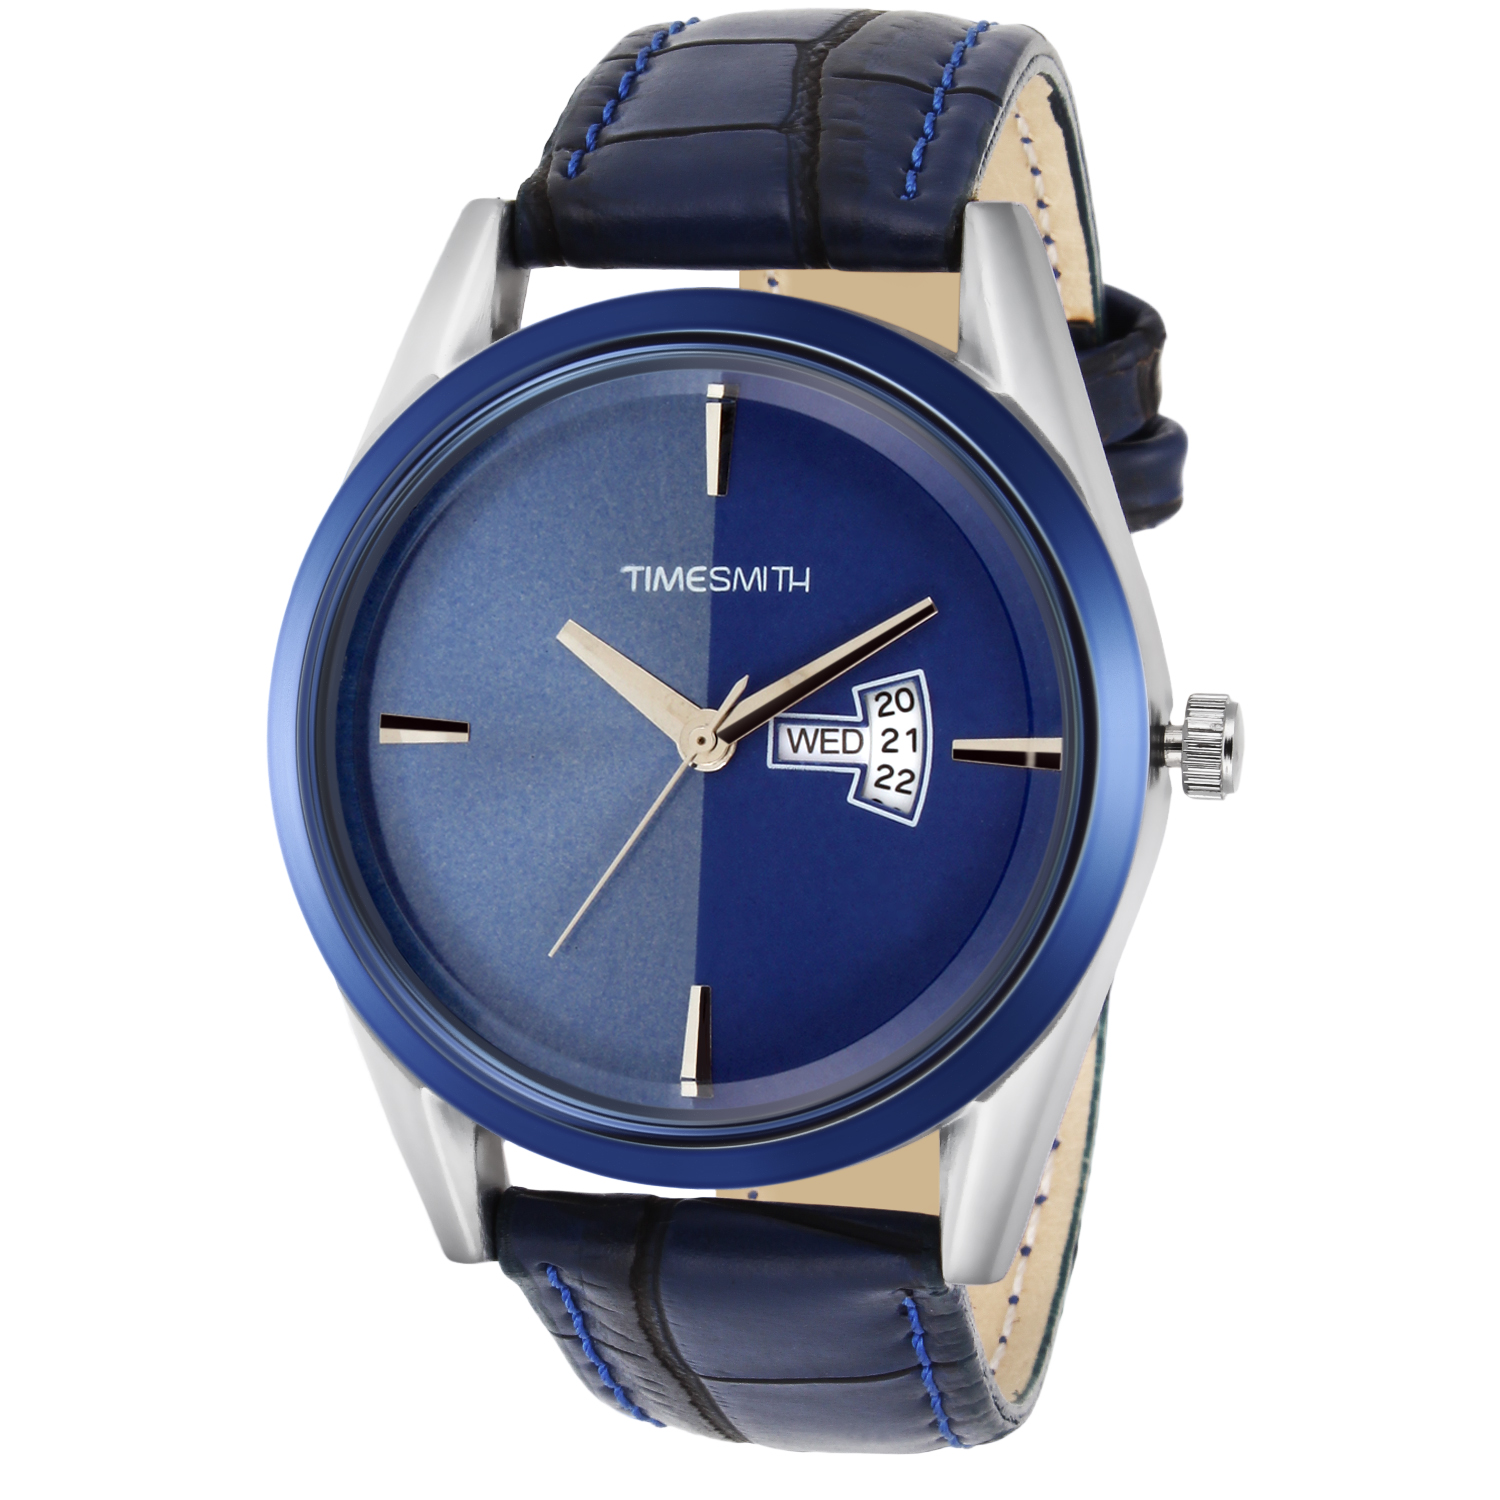 Timesmith | Timesmith Blue Dial Blue Leather Strap GenuineTSC-018mtn